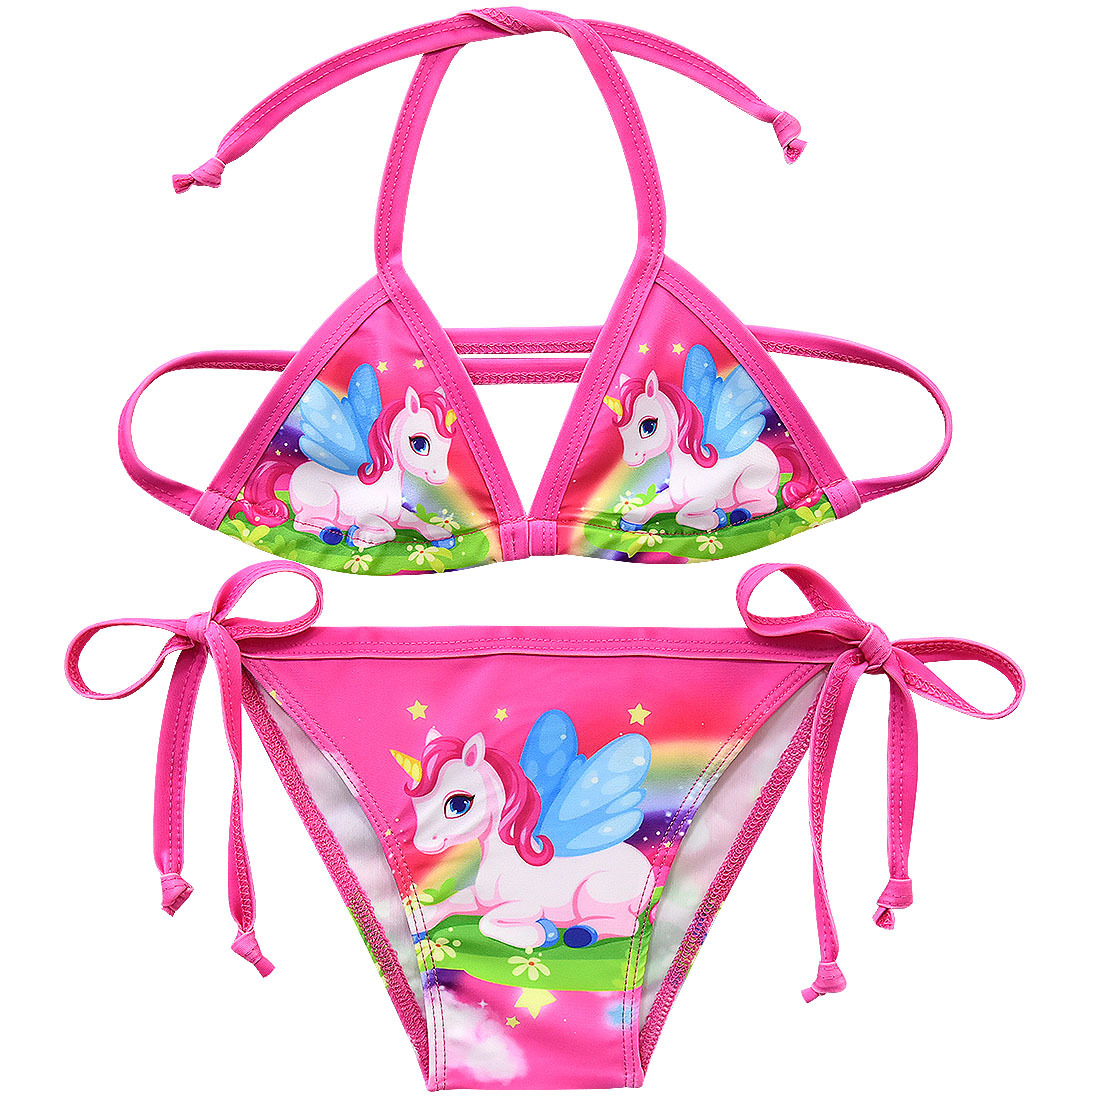 2019 New Unicorn Girls Swimsuit Two Piece 3-12 Years Children's Swimwear Unicorn Bikini Set For Girl Swimming Beachwear G48-8073